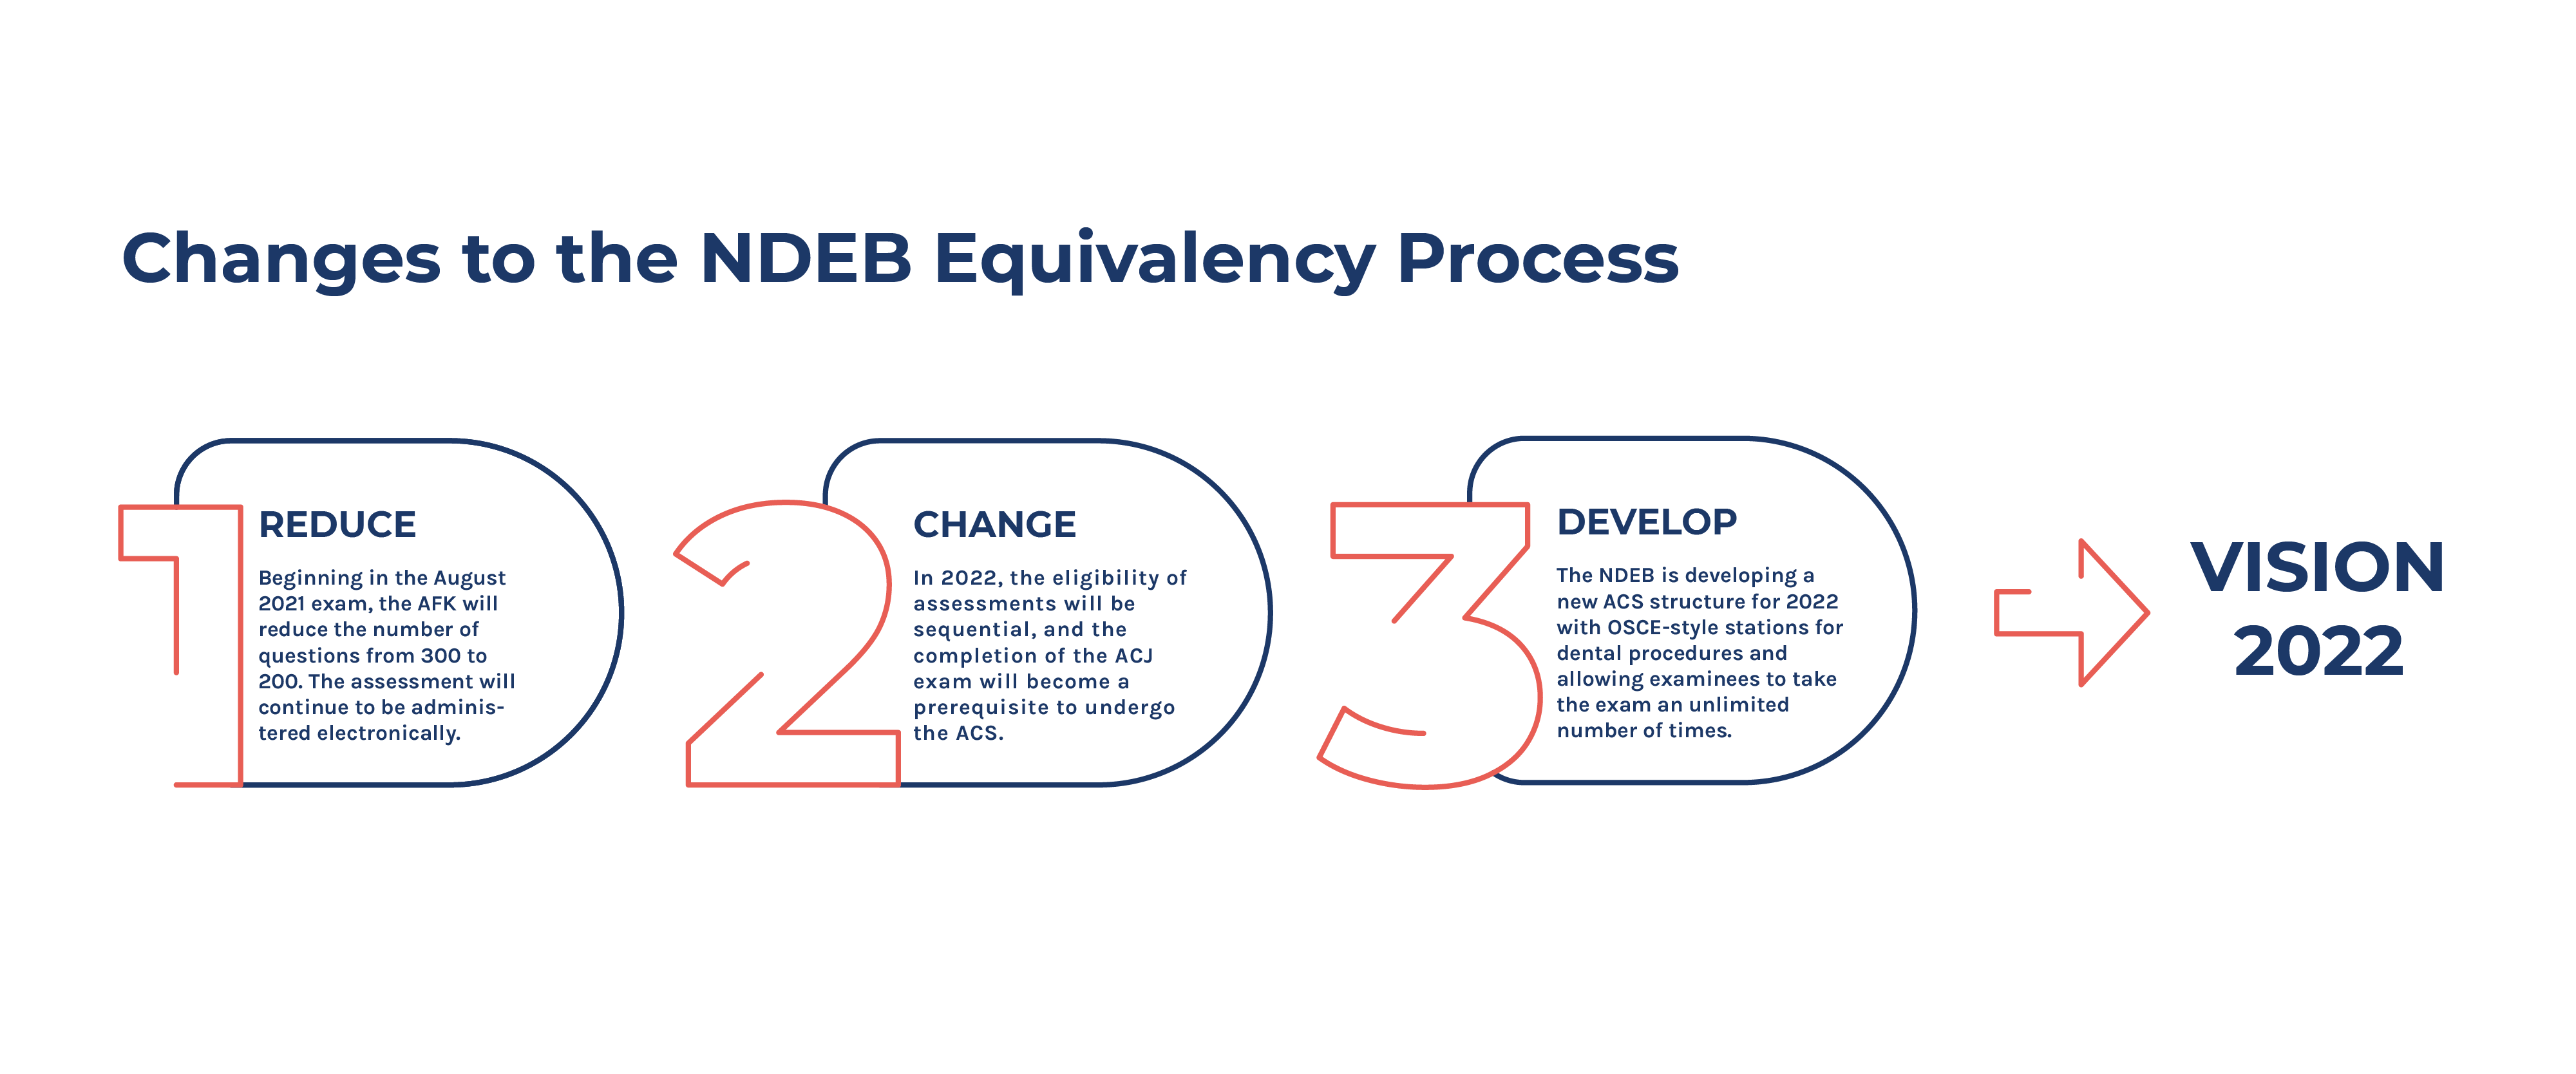 An infographic that goes from 1-3 to visually list the NDEB changes for Vision 2022